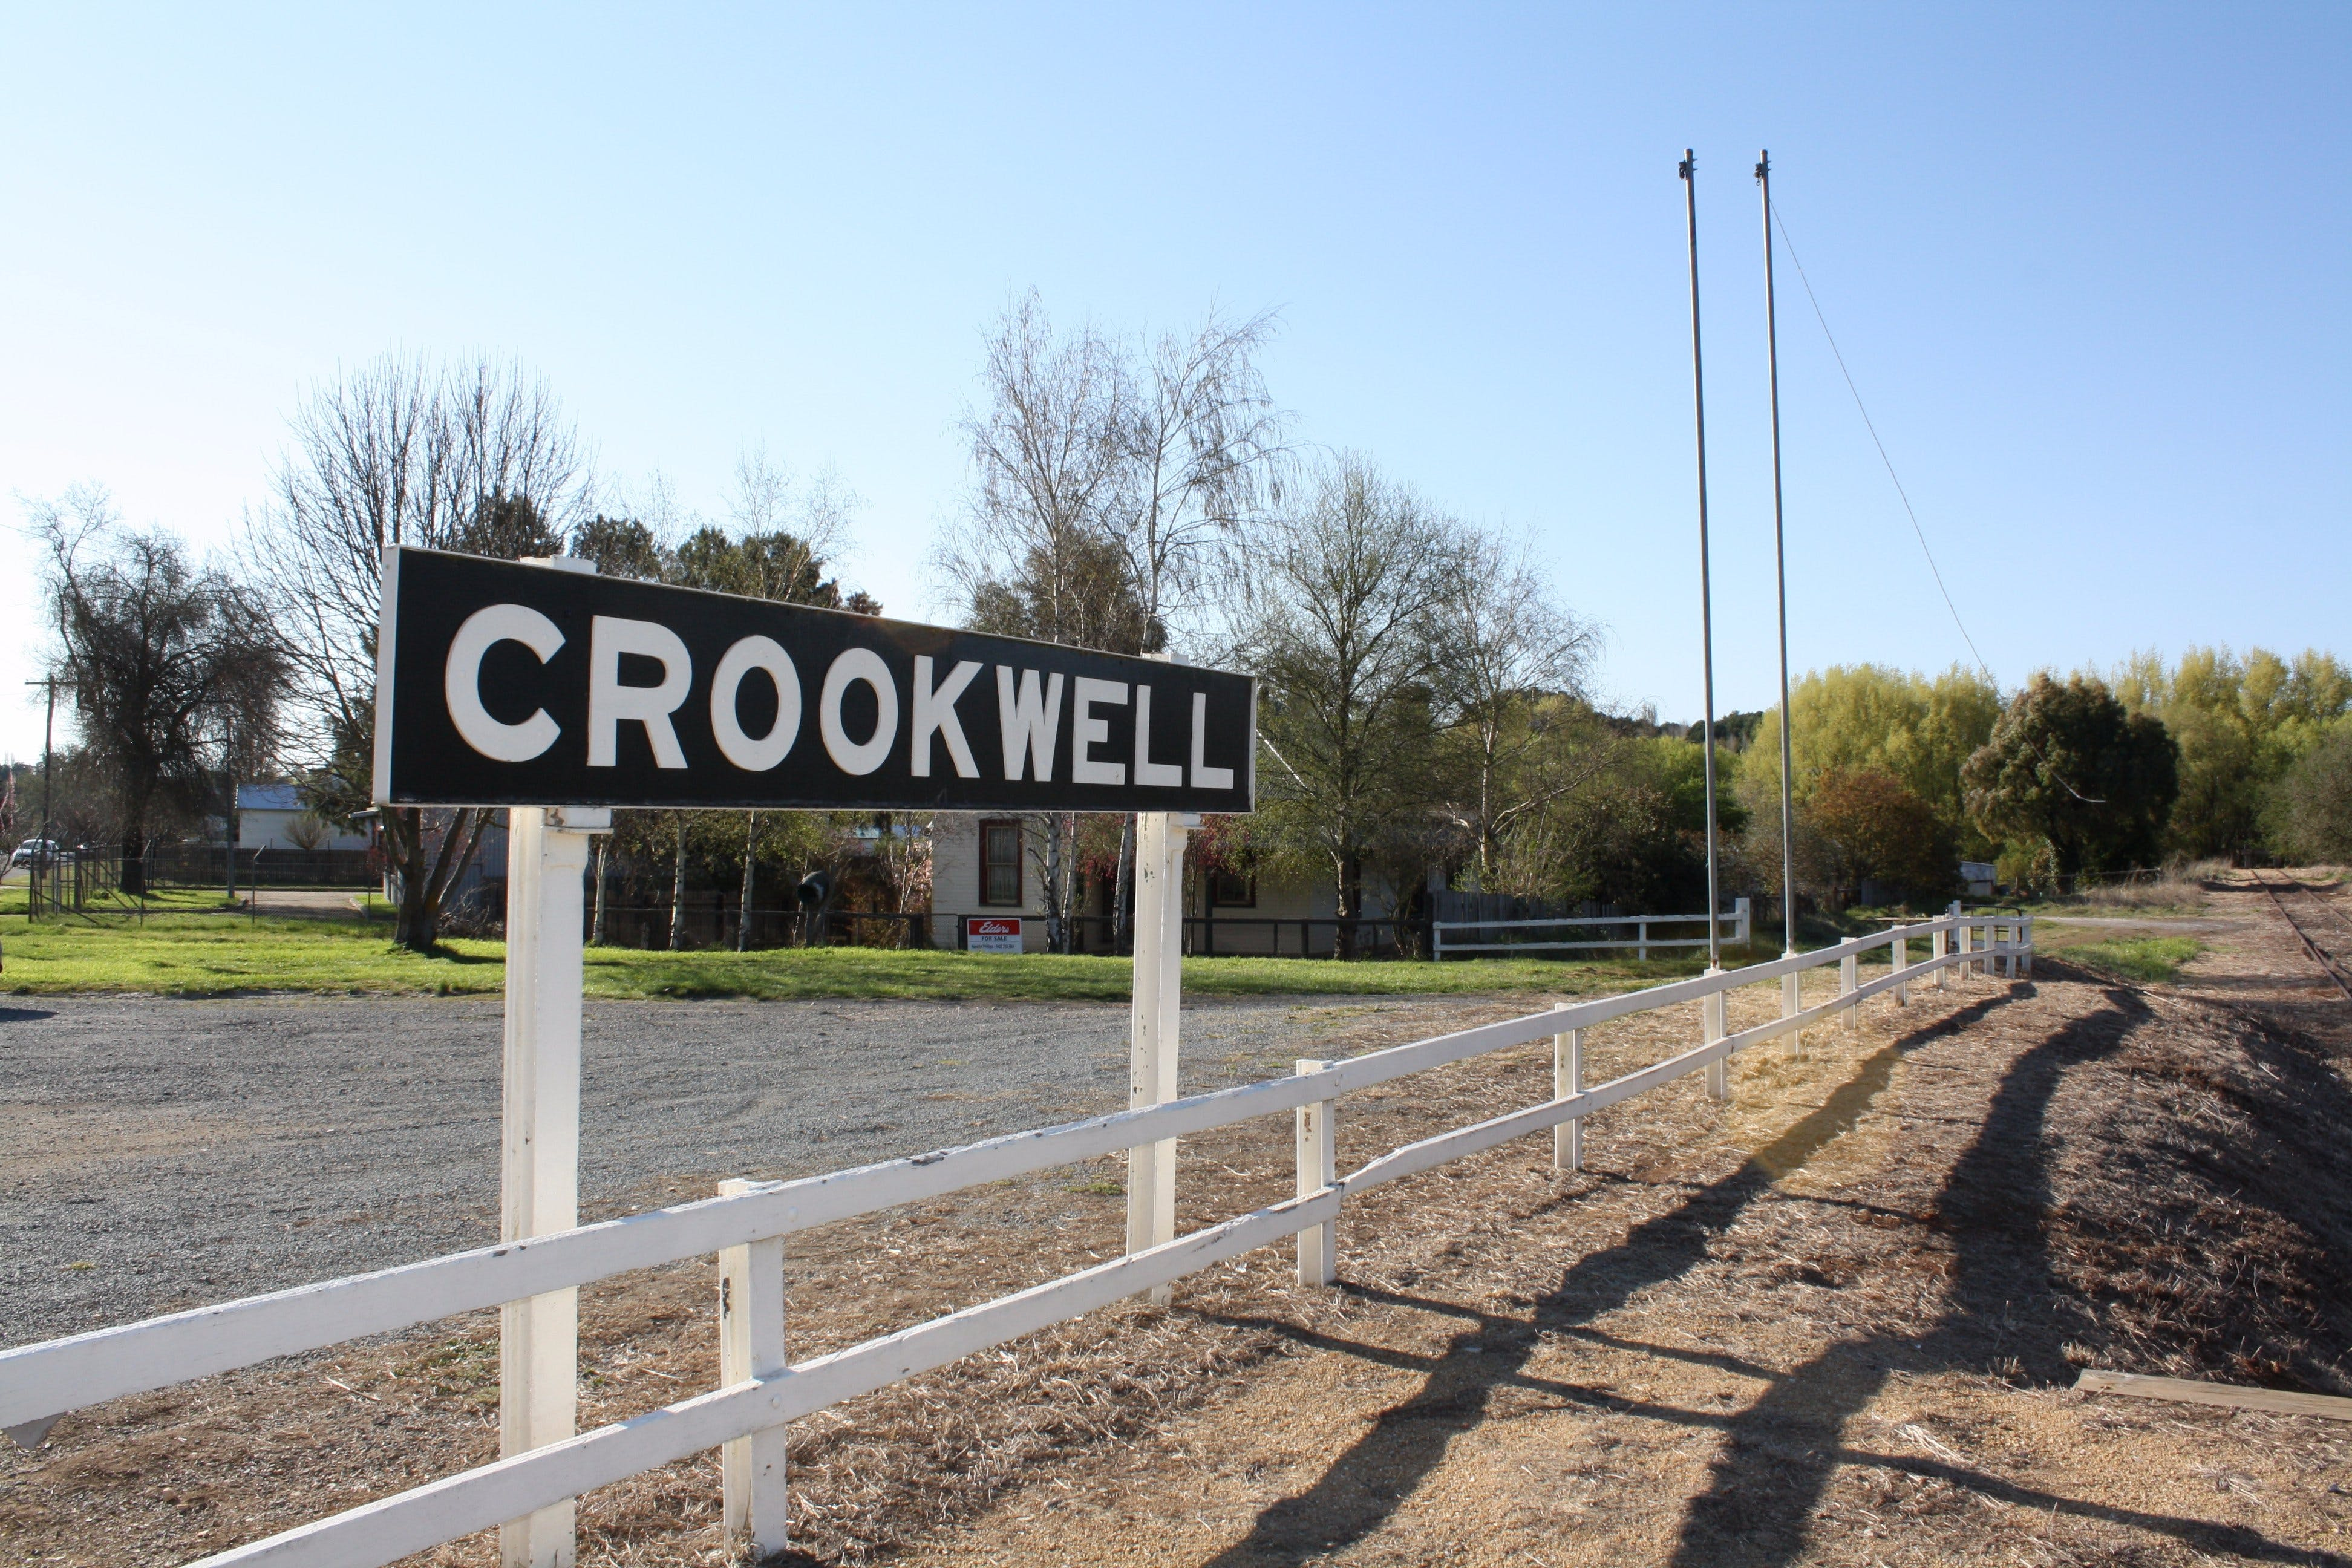 Crookwell Railway Station - Surfers Paradise Gold Coast